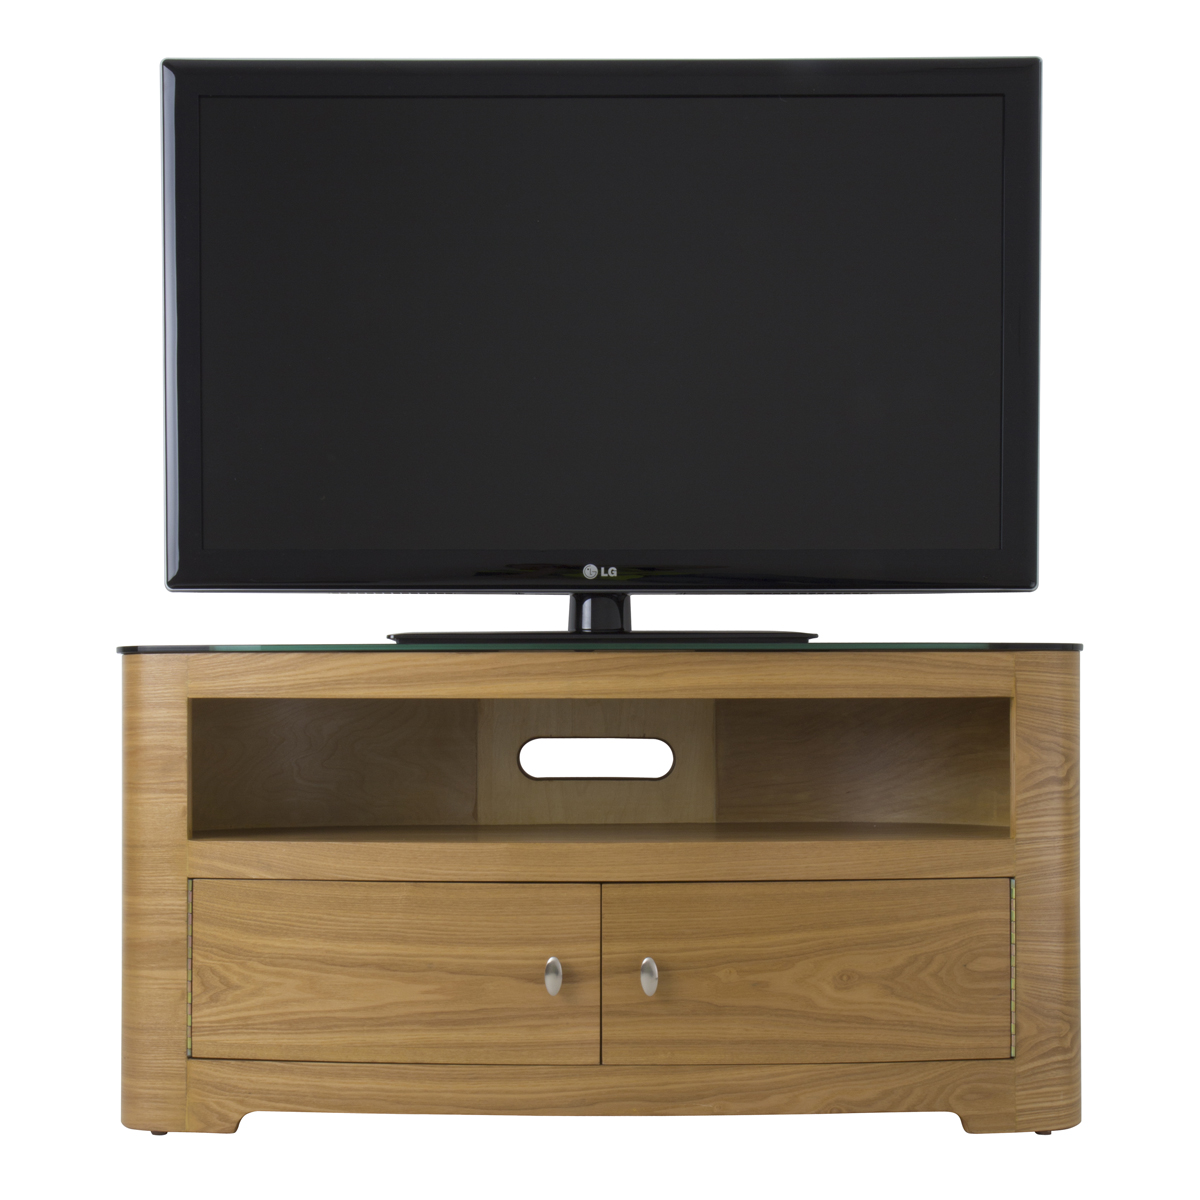 large oak veneer oval lcd plasma tv stand cabinet 42 inch. Black Bedroom Furniture Sets. Home Design Ideas